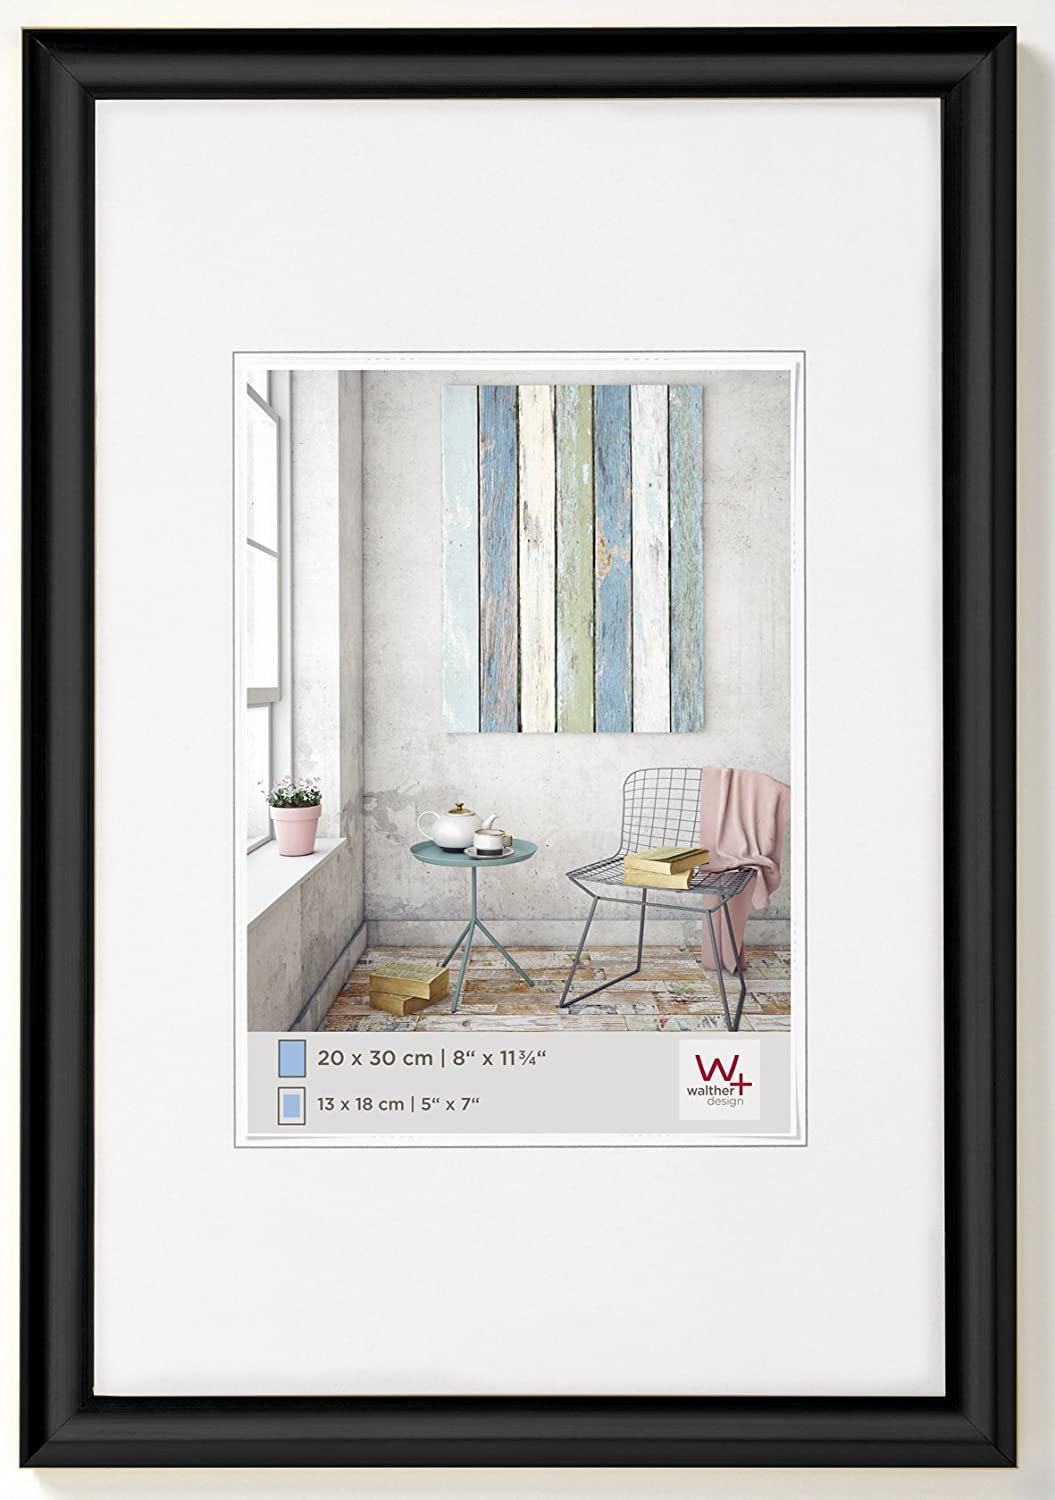 Walther Design KP824B Trendstyle Picture Frame, 7 x 9.50 inch (18 x 24 cm), Black